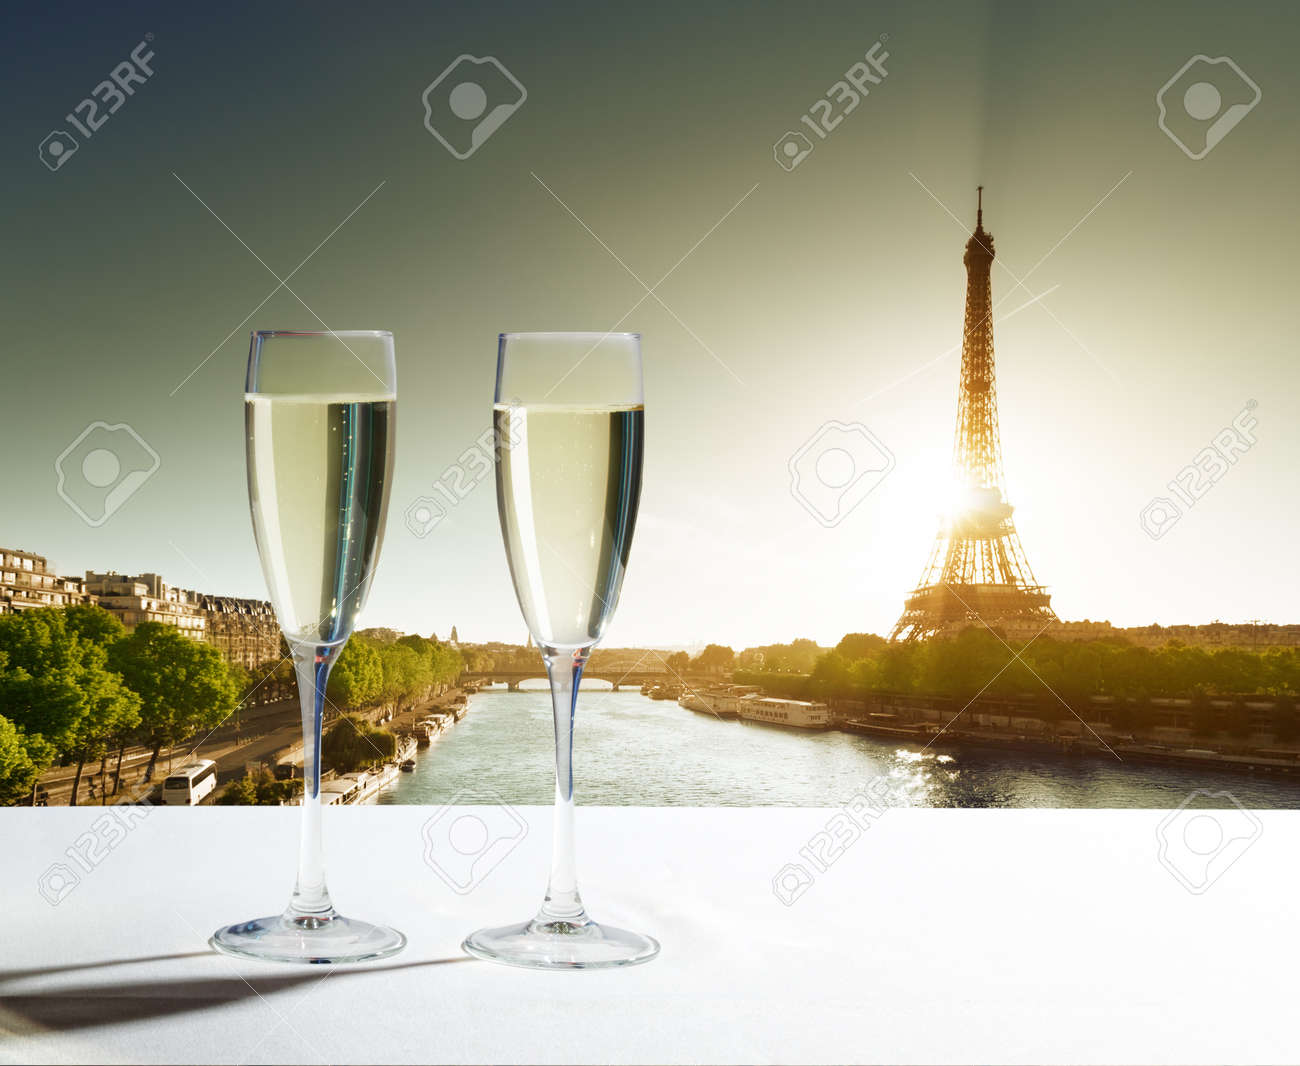 champaign Glasses and  Eiffel tower in Paris Stock Photo - 23800377